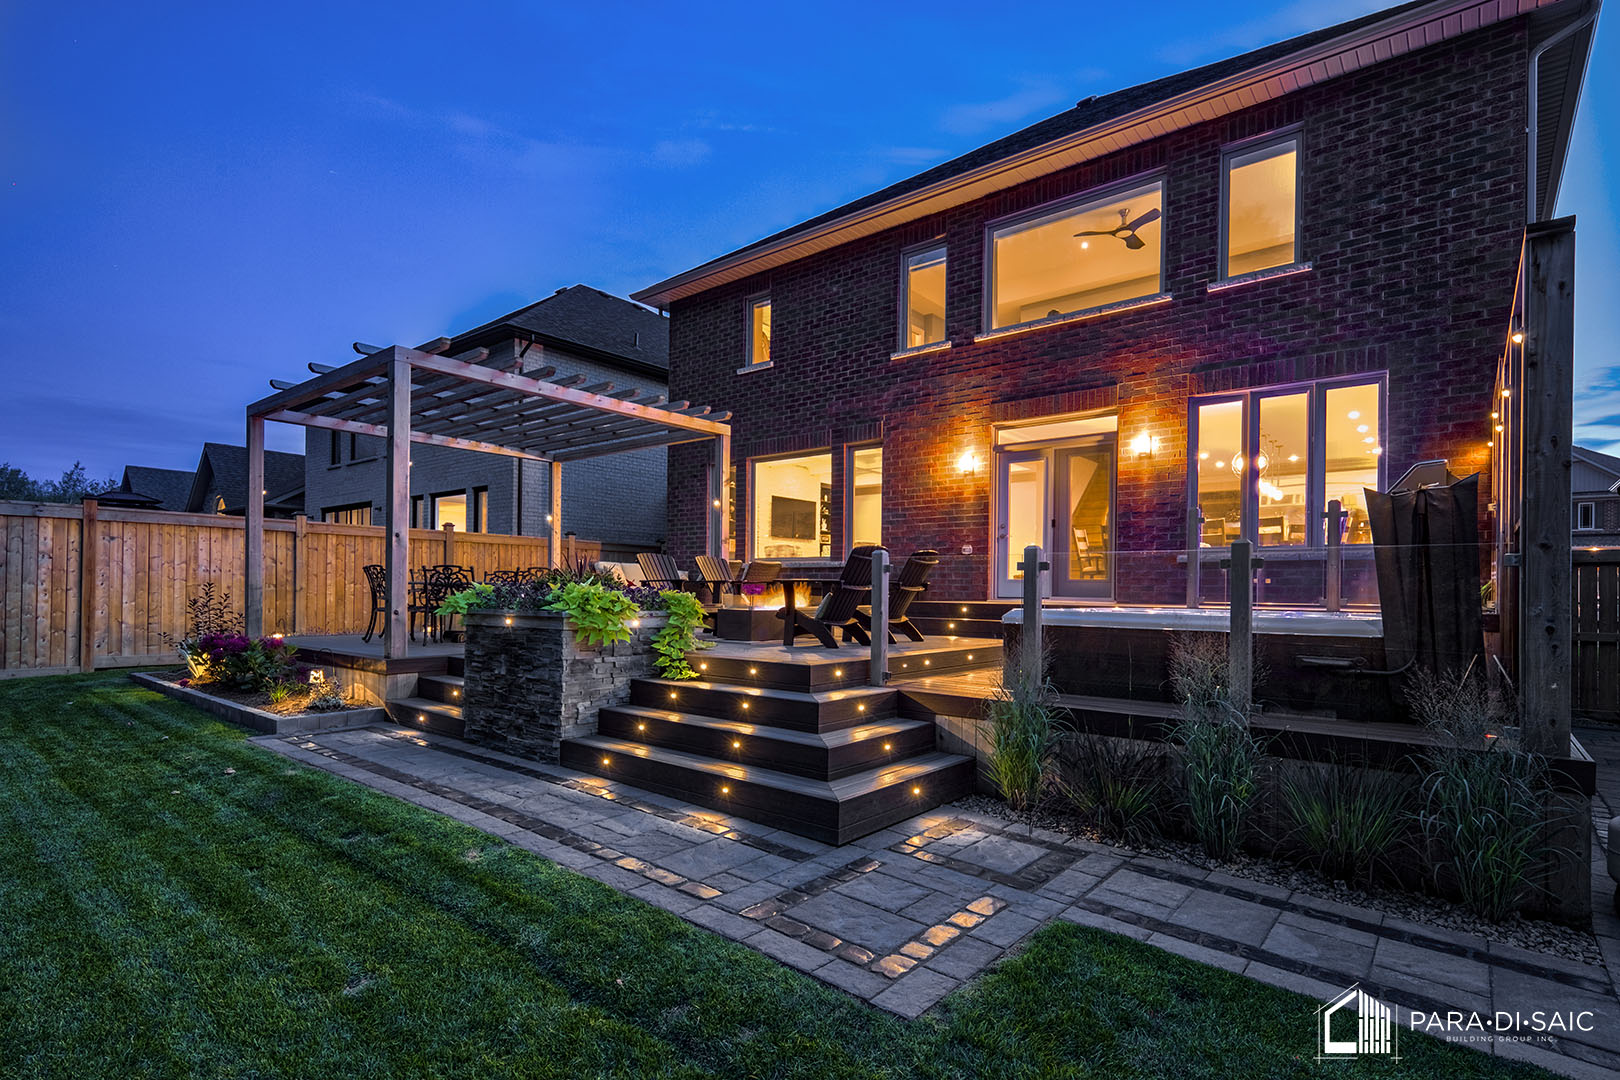 Courtice Deck - Front Right View at Dusk